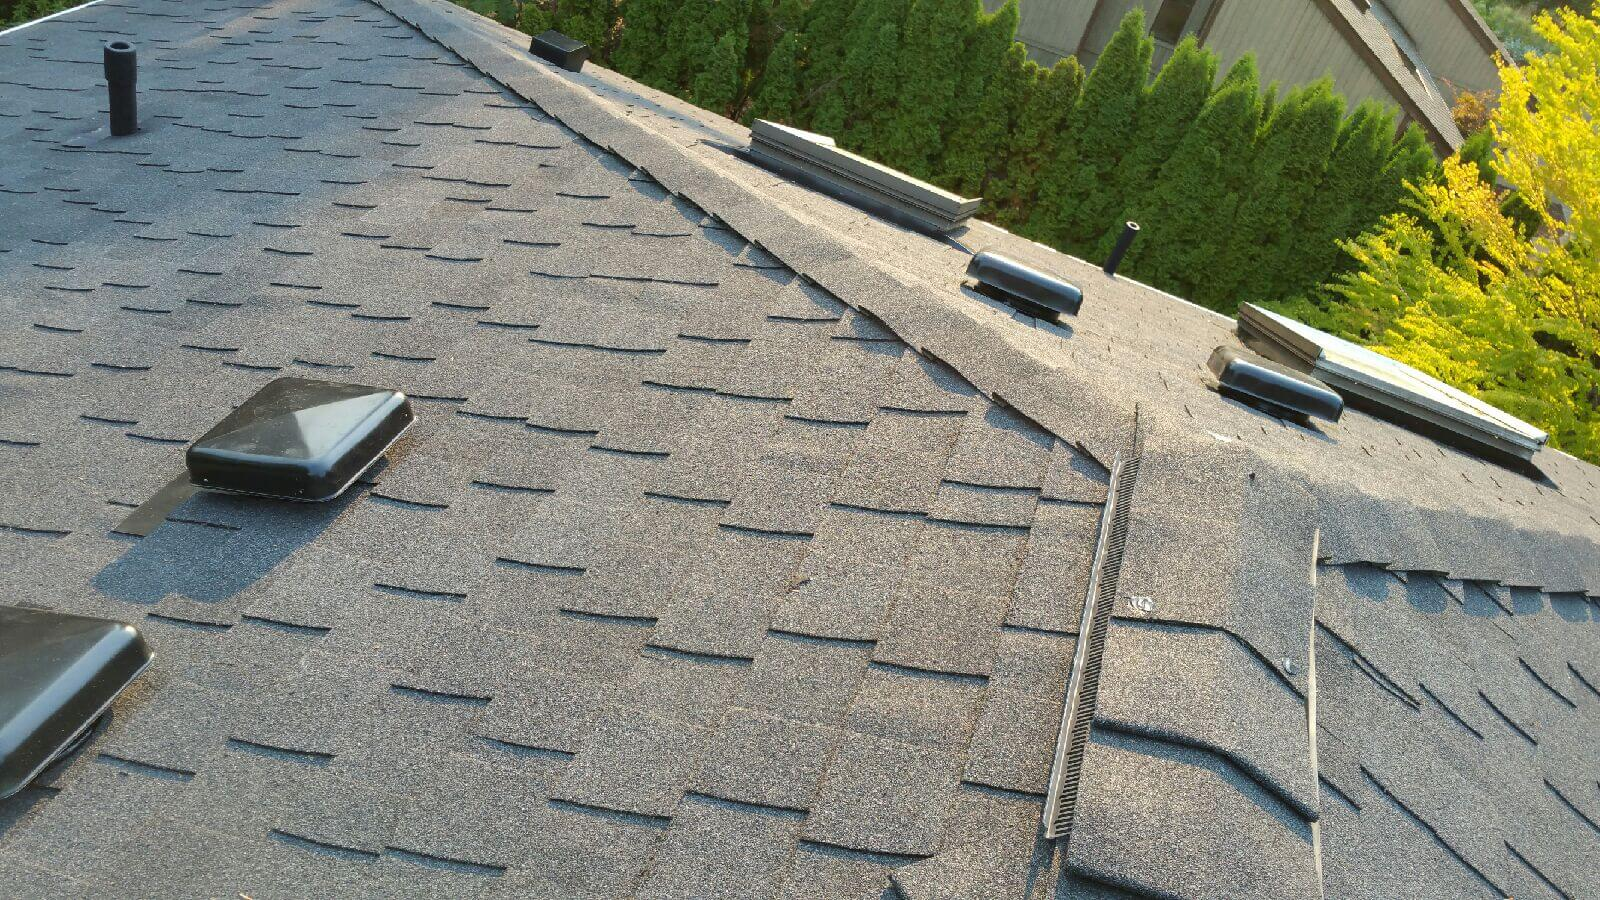 Landmark Tl Moire Black Roof By Mcs Roofing Mcs Roofing